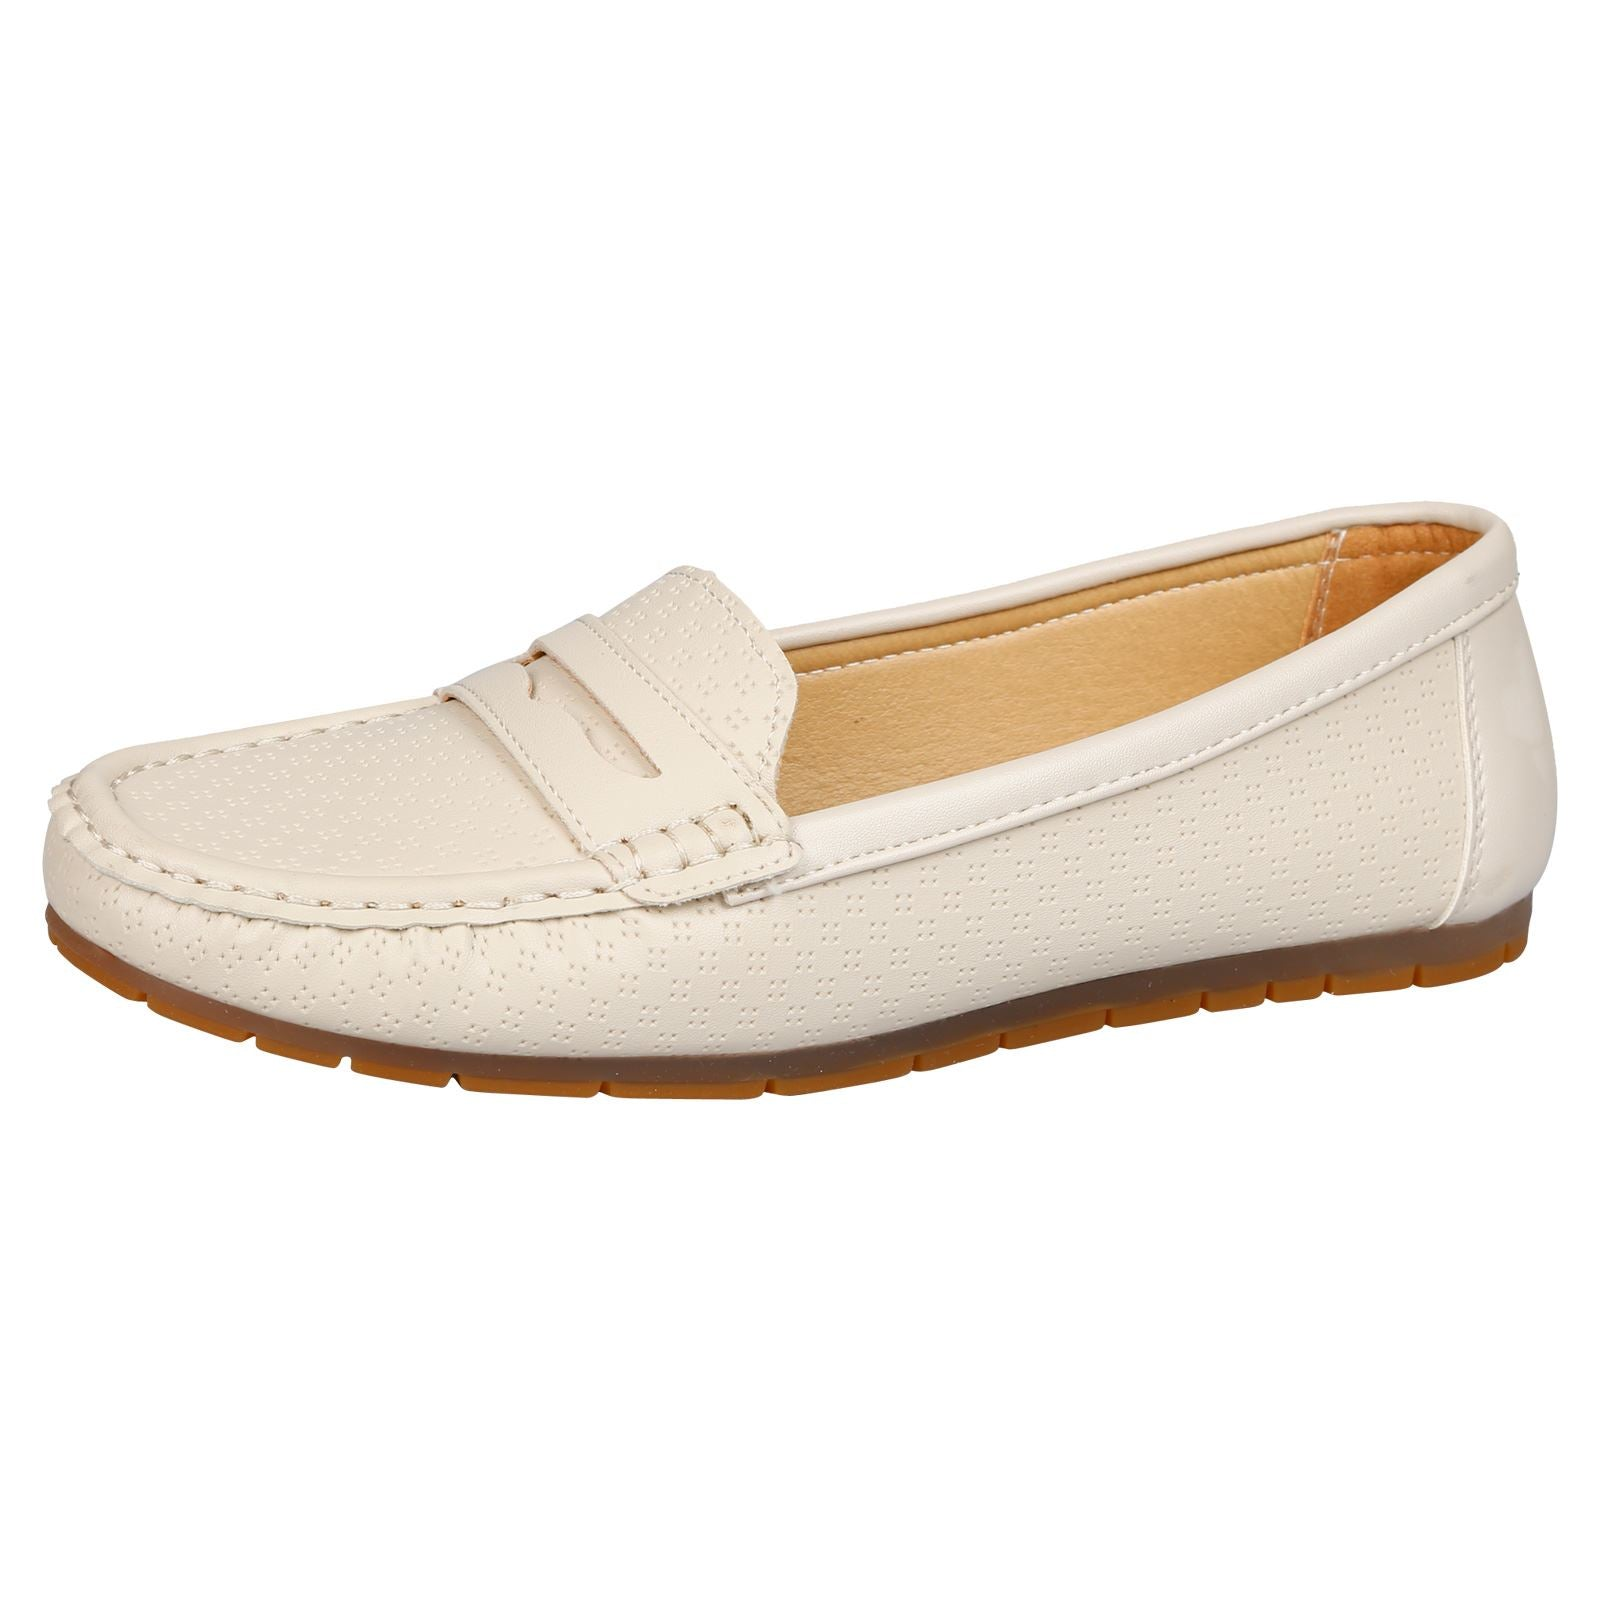 Celinda Textured Mocassins in Beige Faux Leather